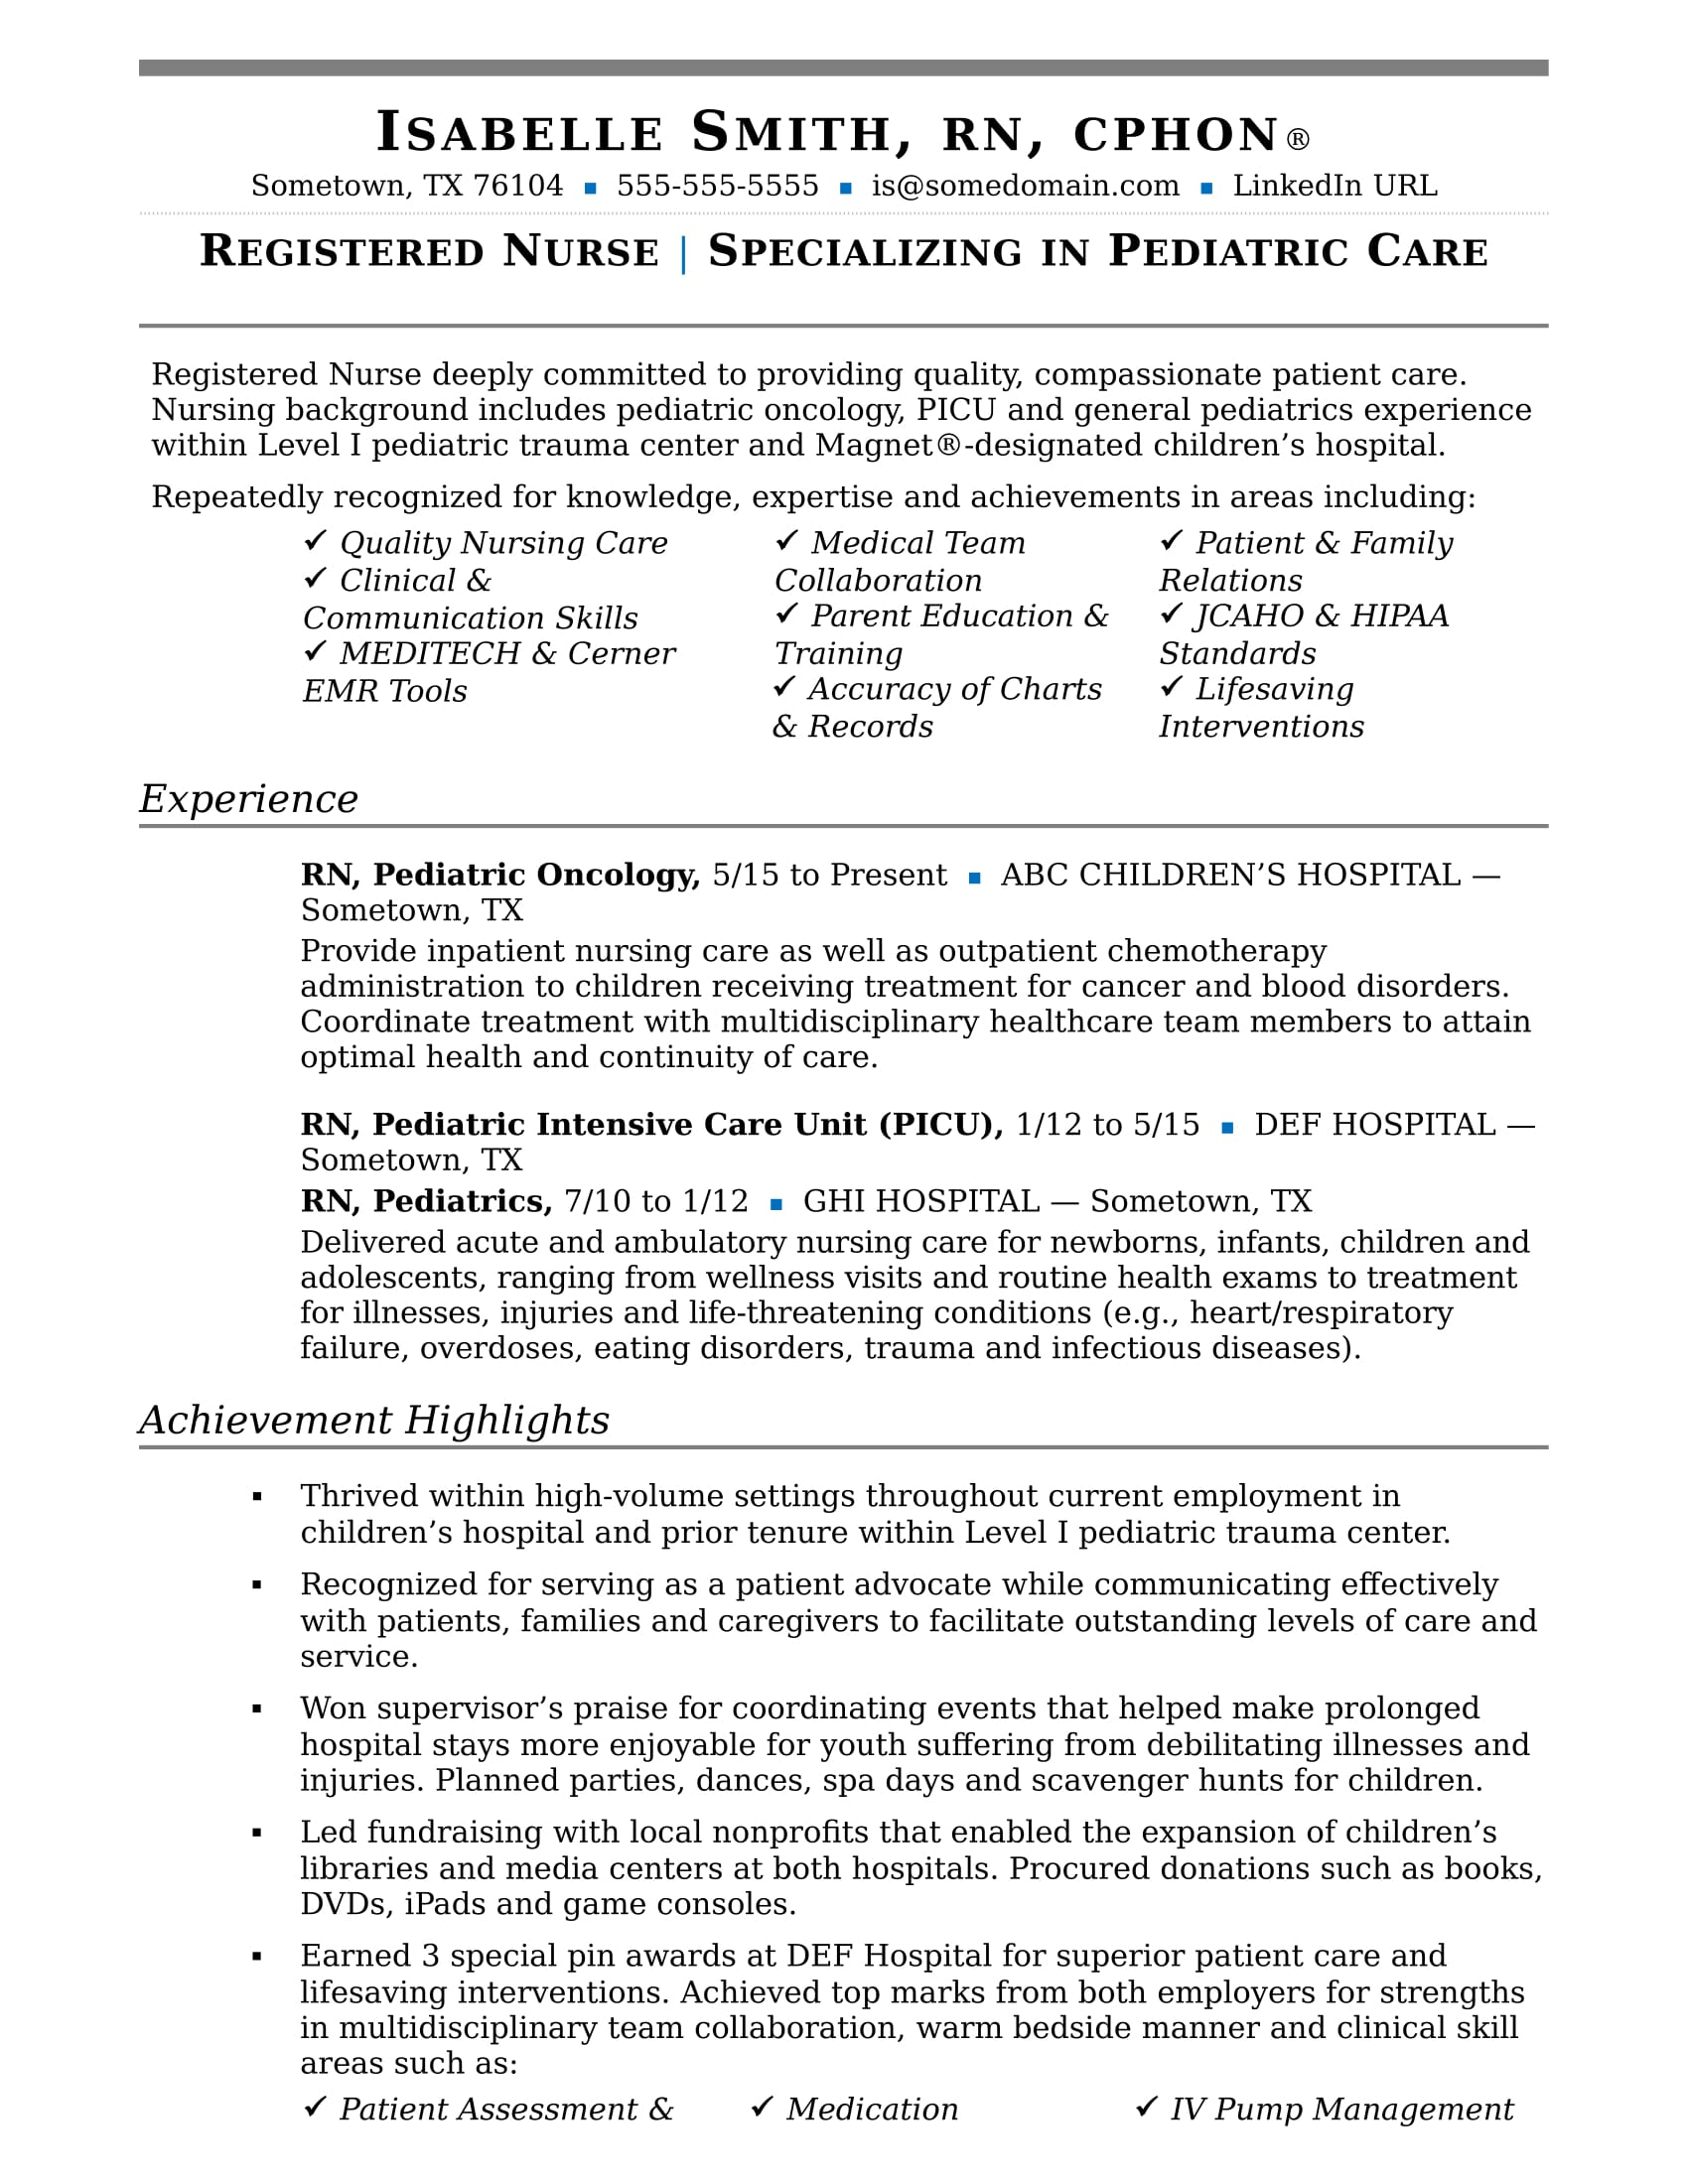 resumes for nursing